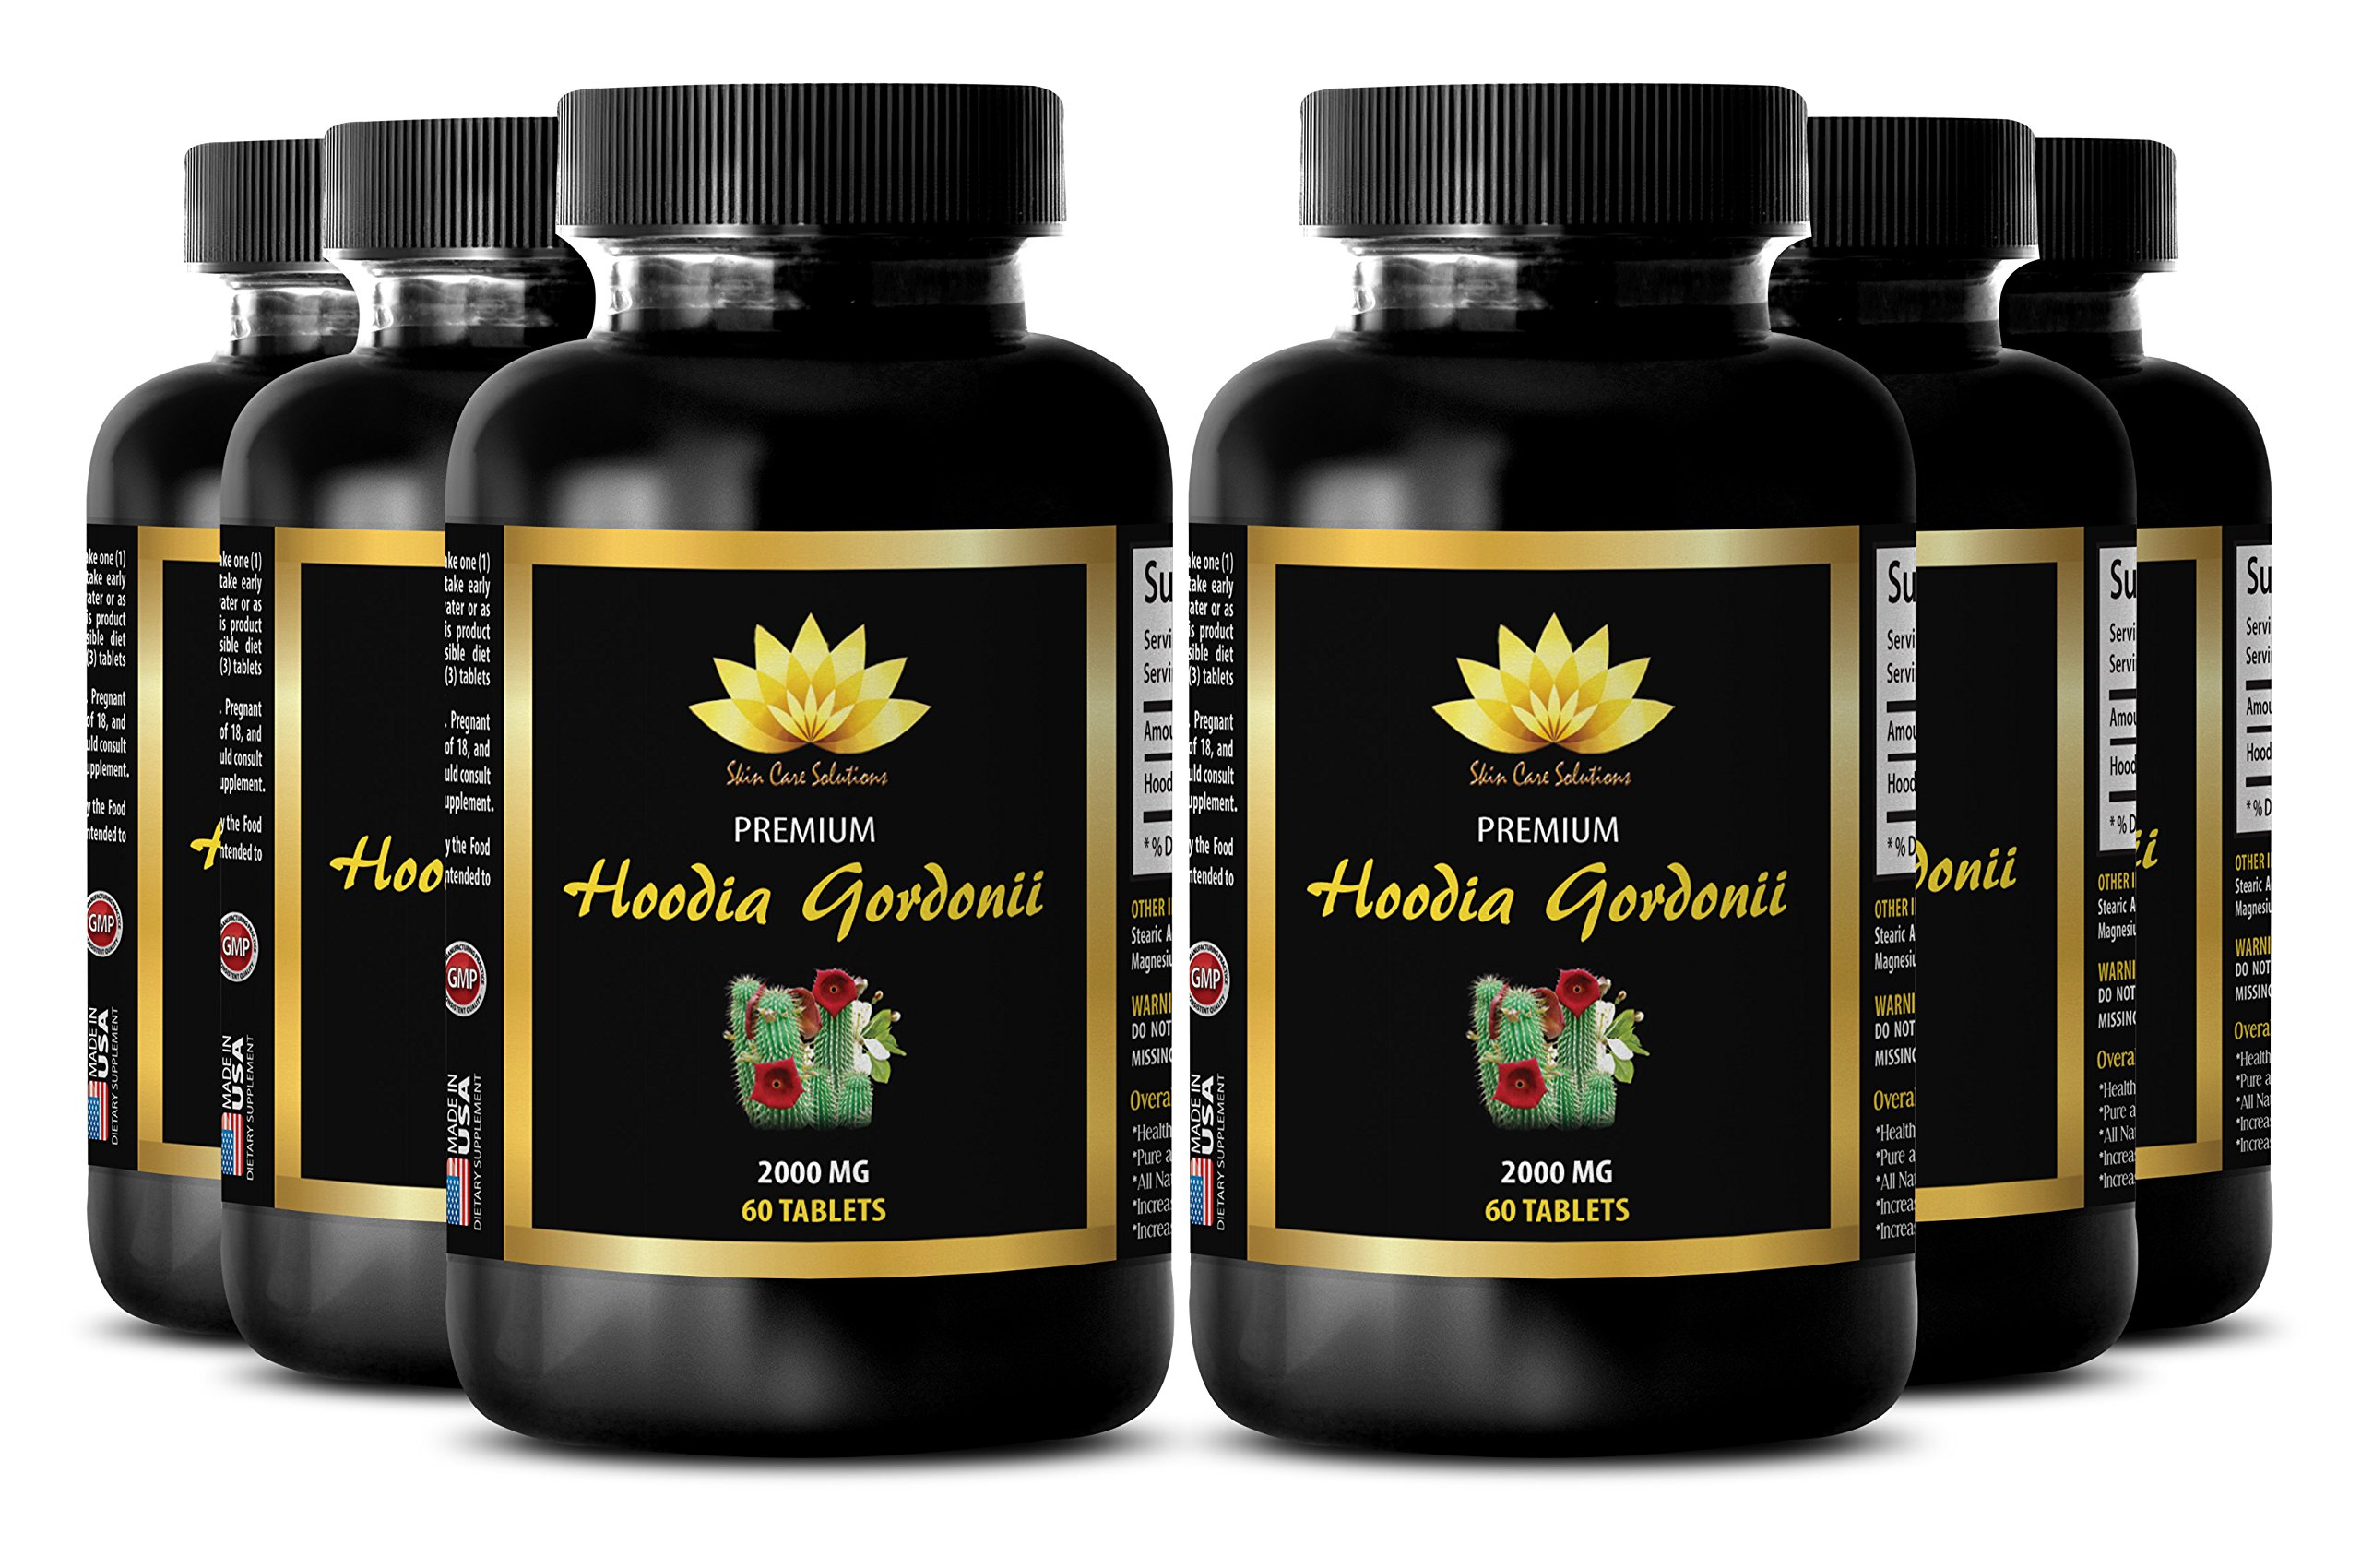 Burn fat lose weight - HOODIA GORDONII EXTRACT 2000mg - Energy weight loss pills - 6 Bottles 360 Tablets